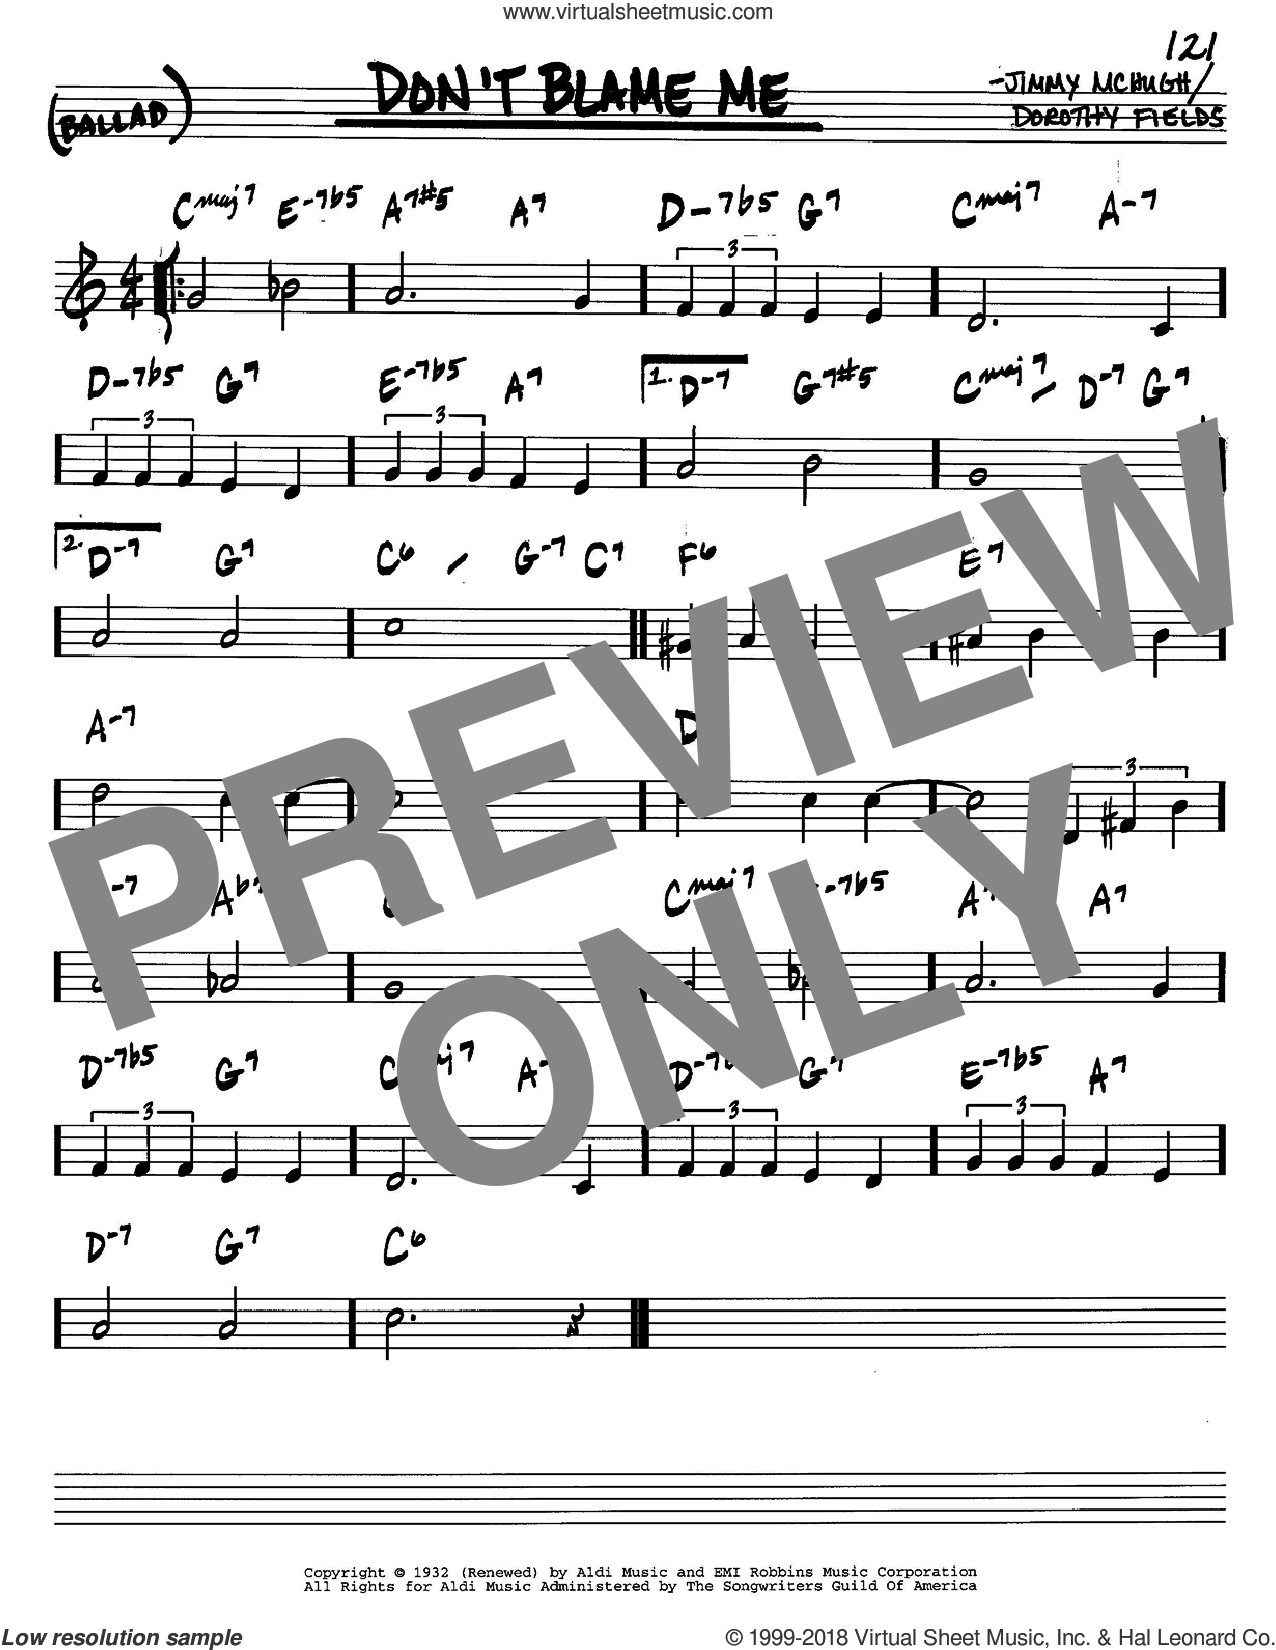 Don't Blame Me sheet music for voice and other instruments (C) by Jimmy McHugh